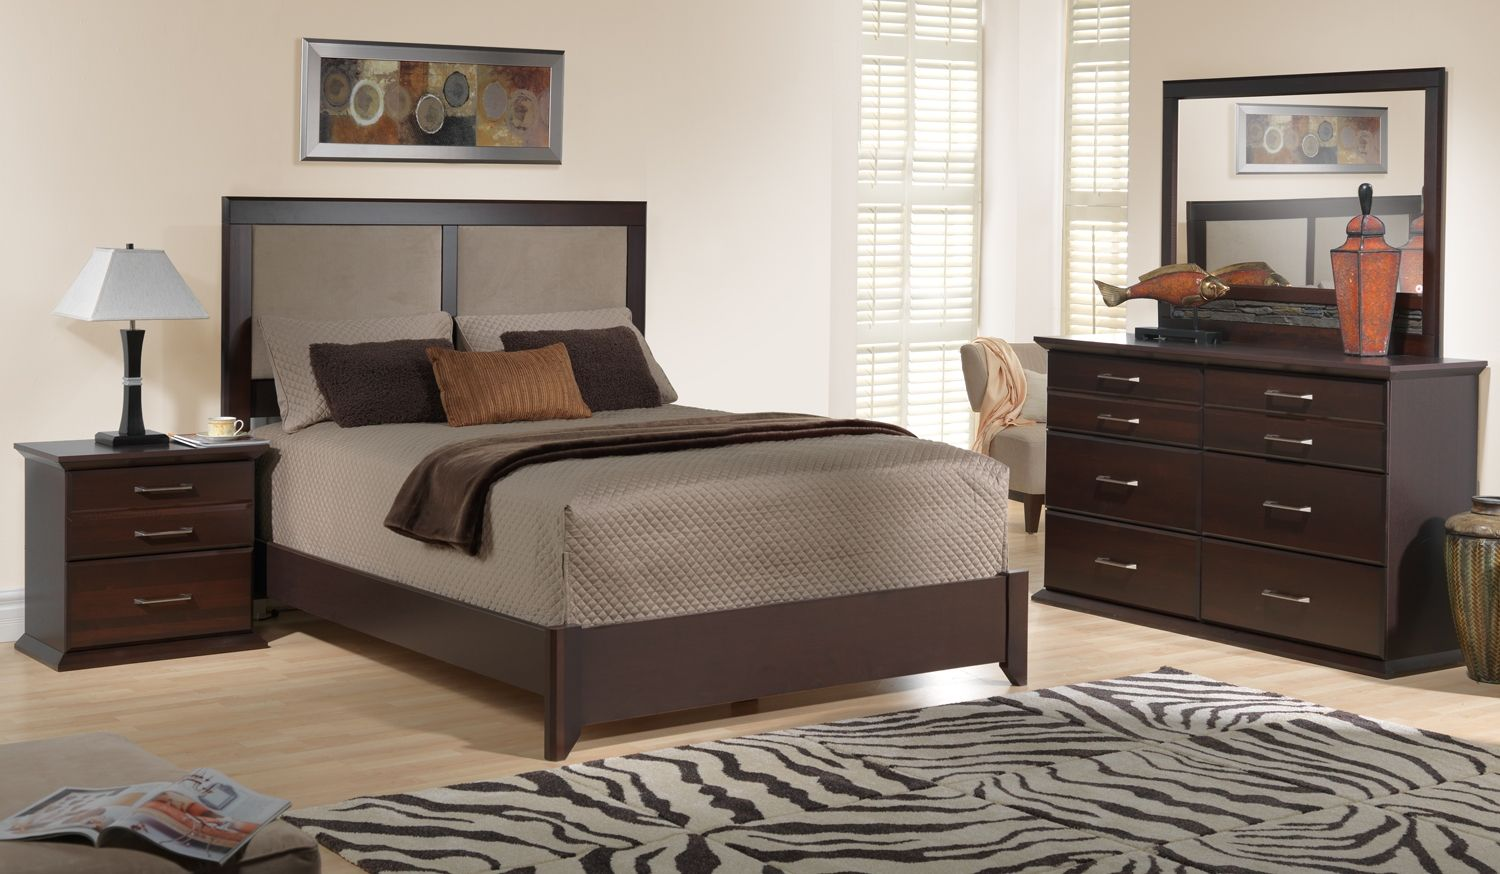 sherwood bedroom 5 pc. queen bedroom set - leon's | decorating